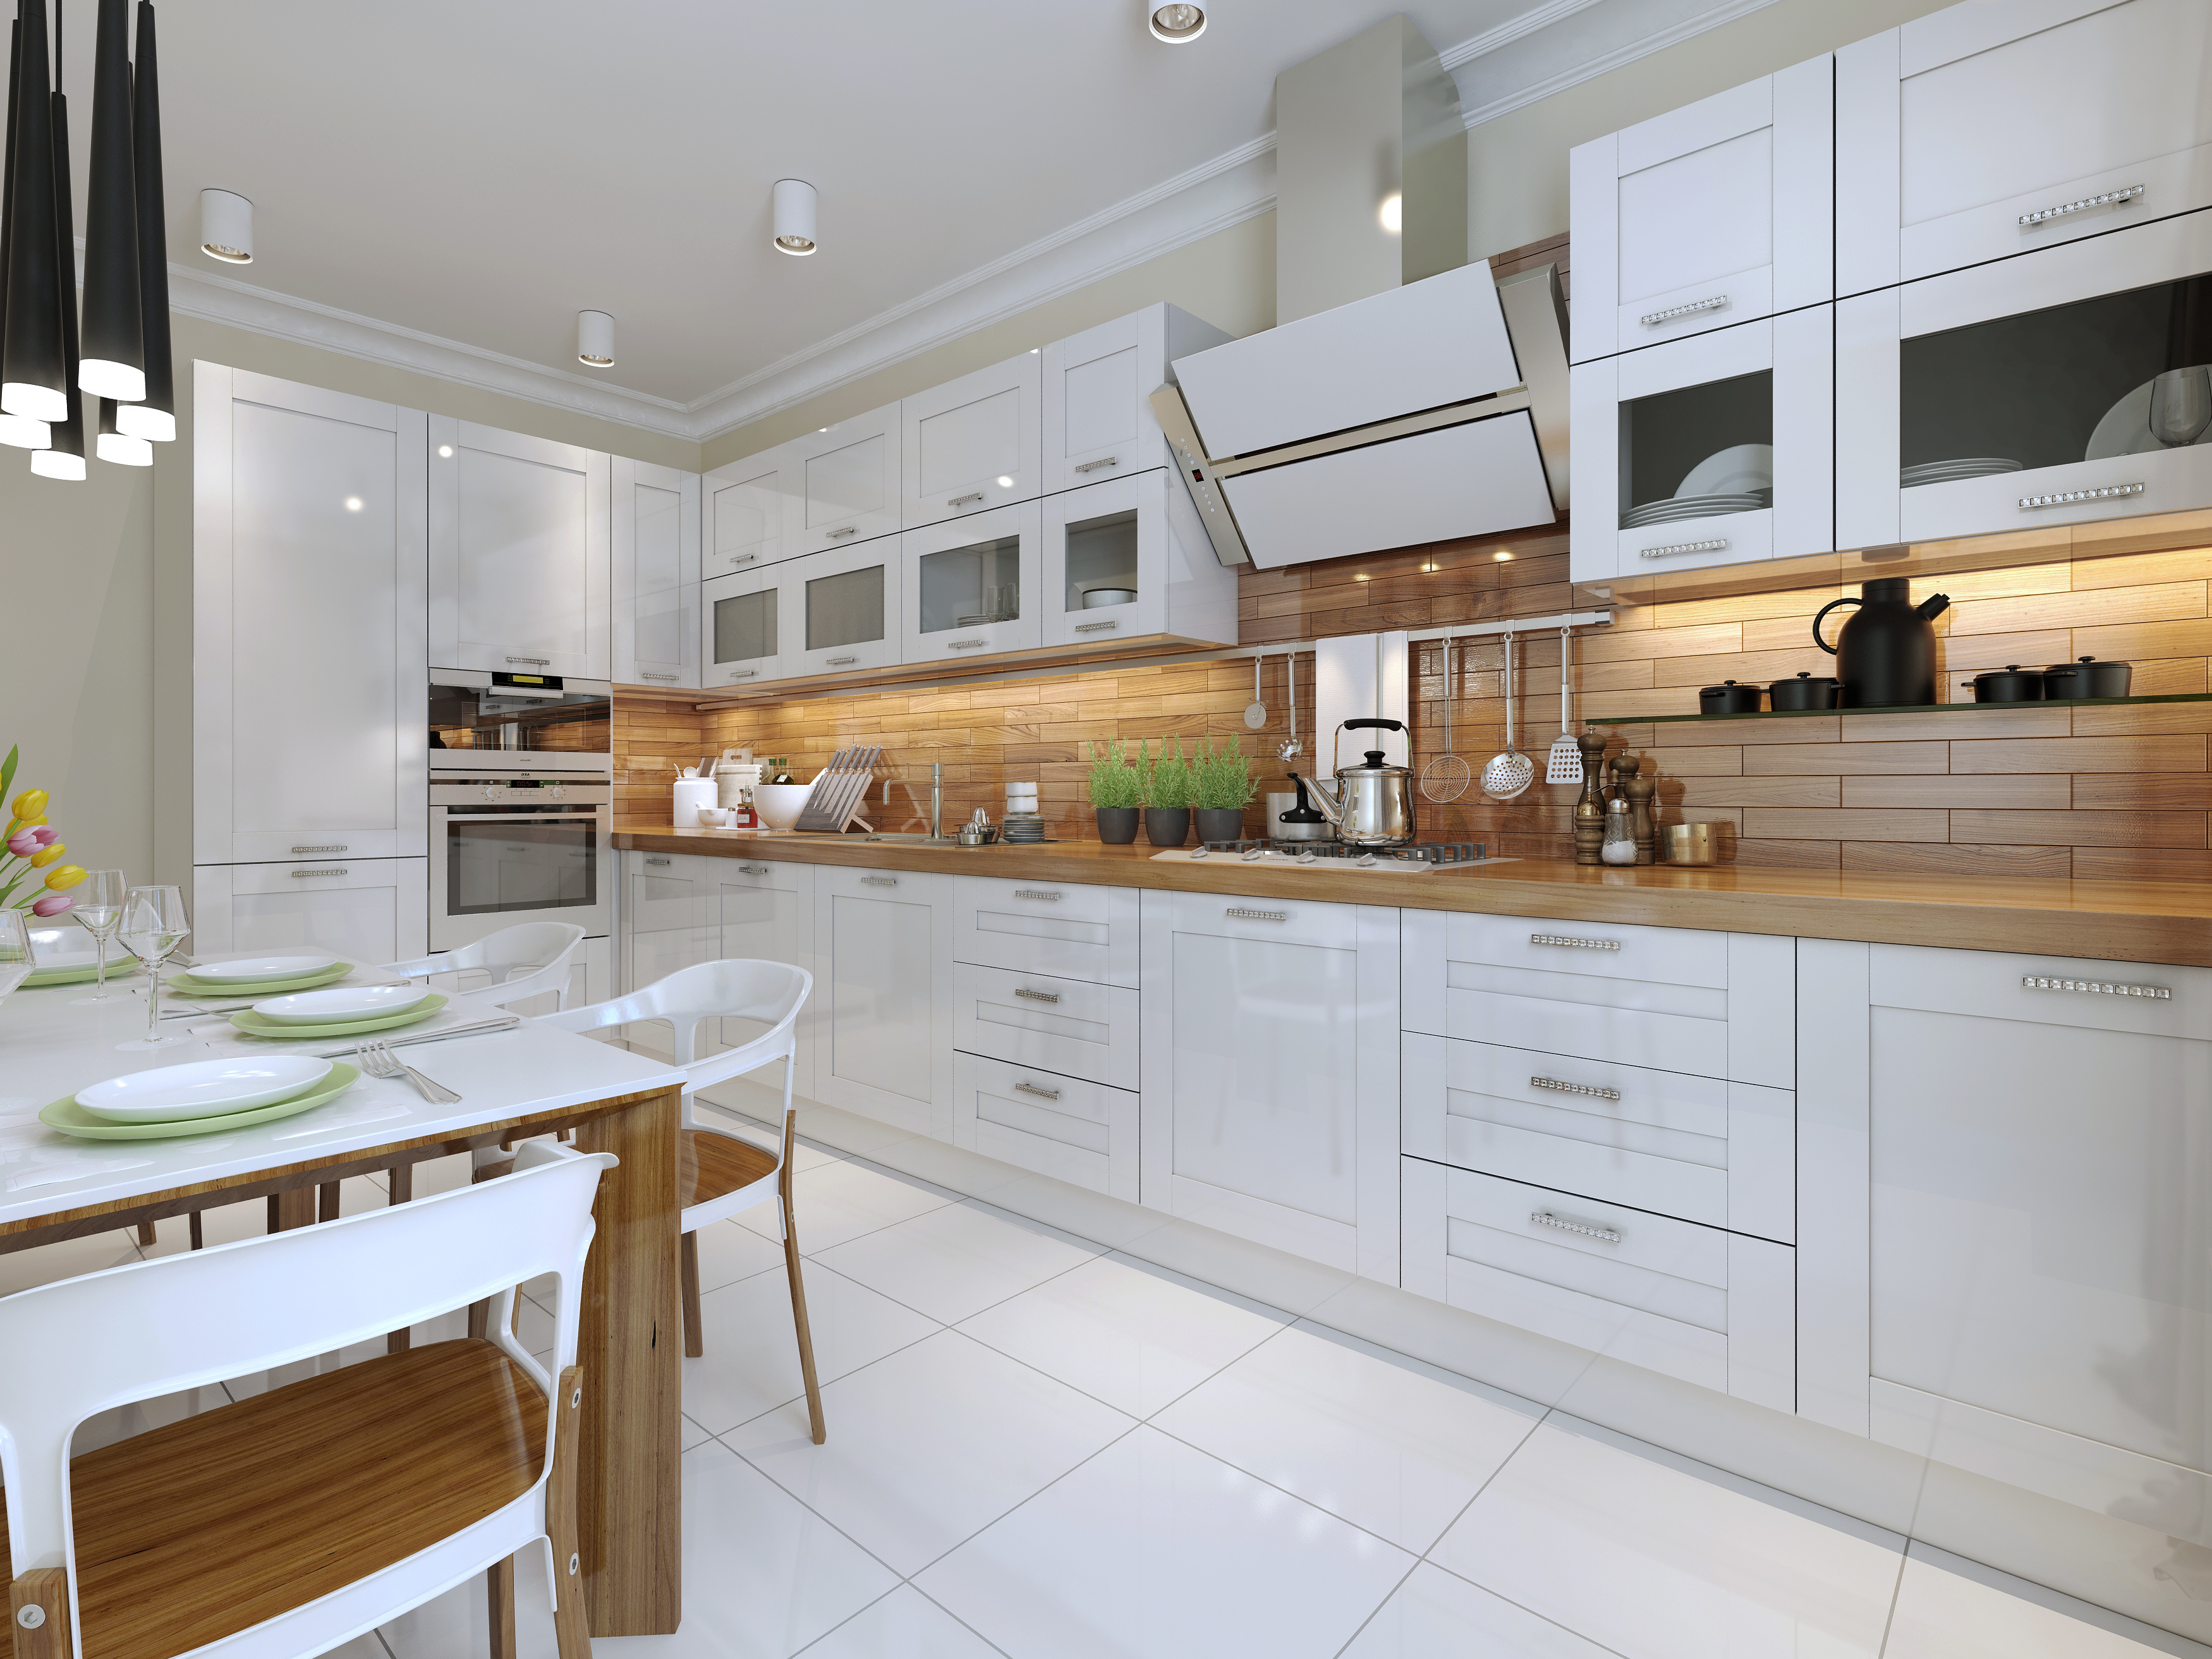 Classic Kitchens,Classic Kitchen Design, Period Kitchen Design ...